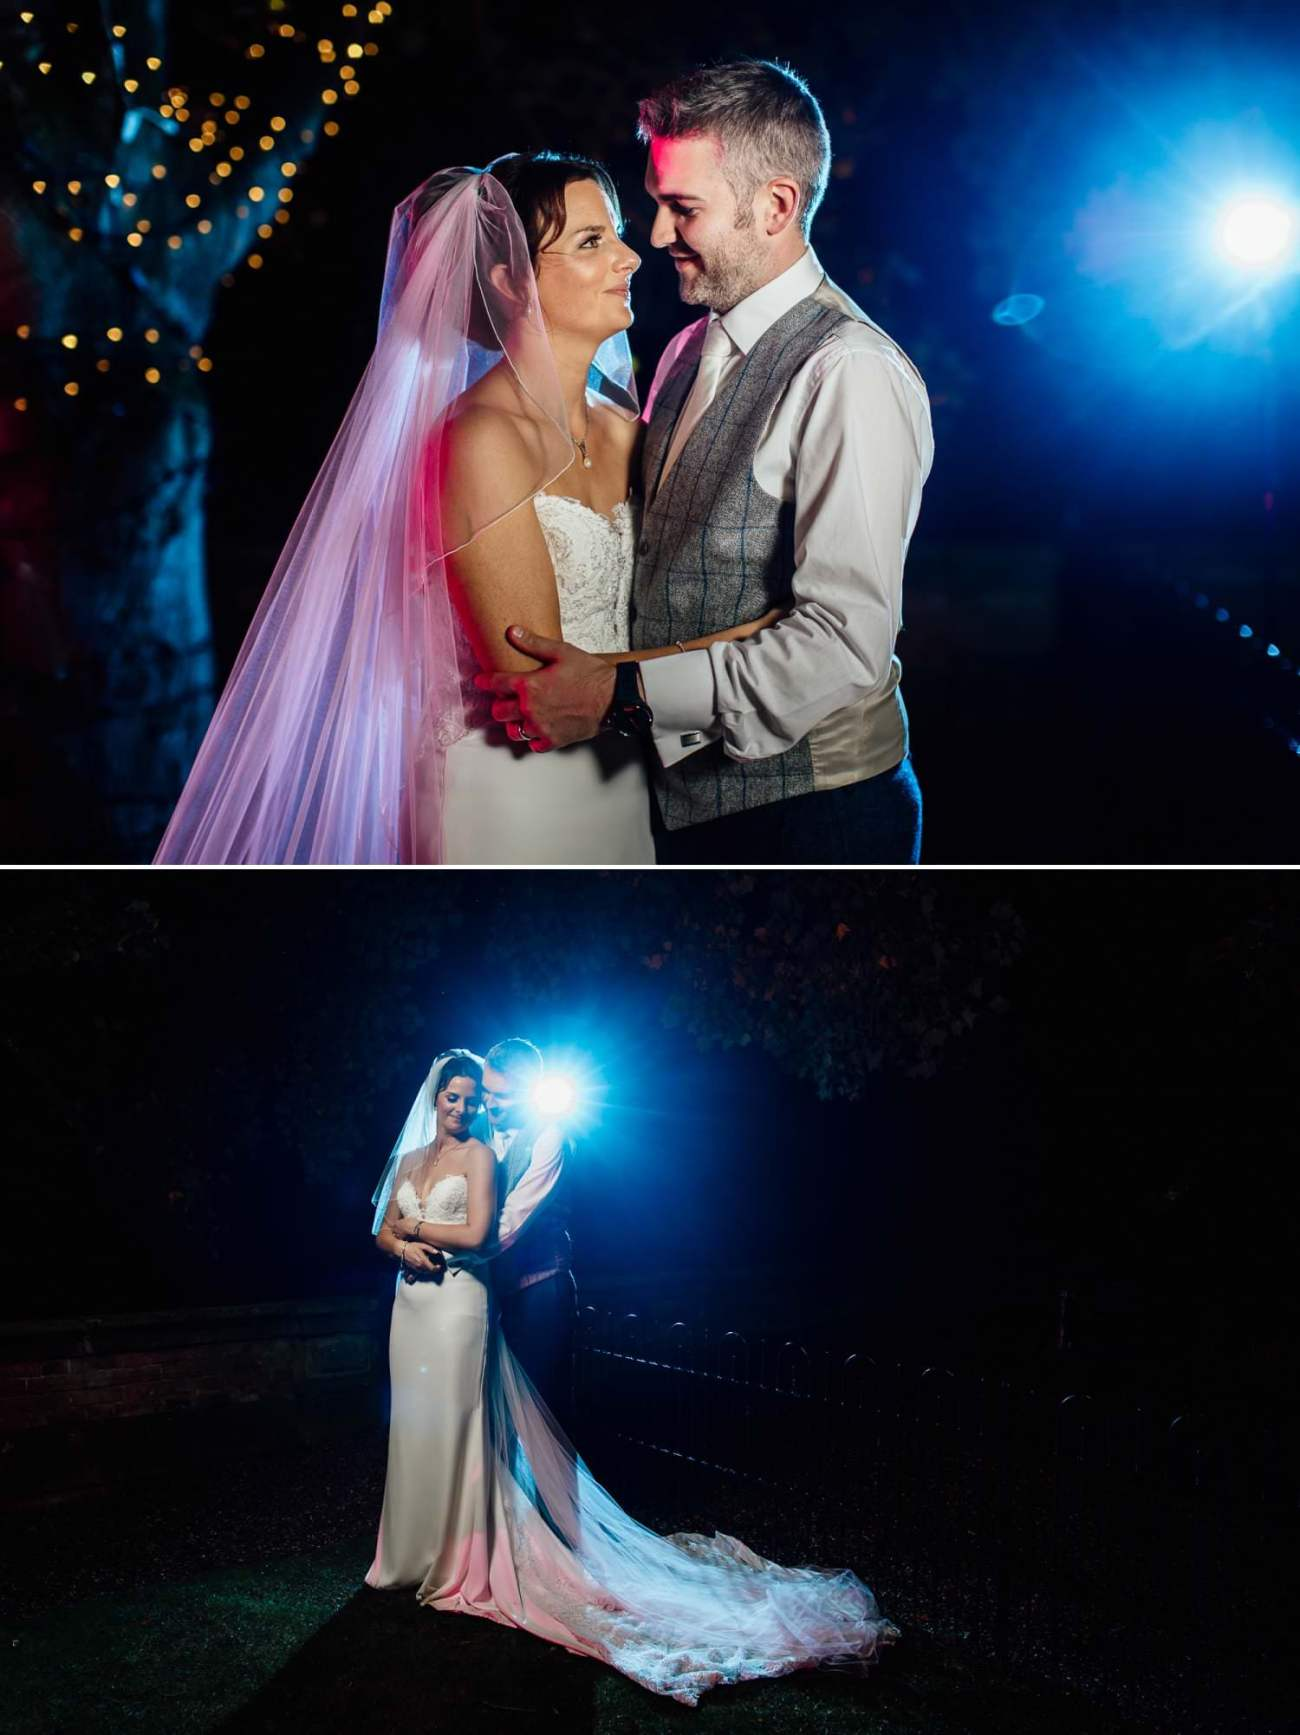 Evening wedding portraits at Iscoyd Park